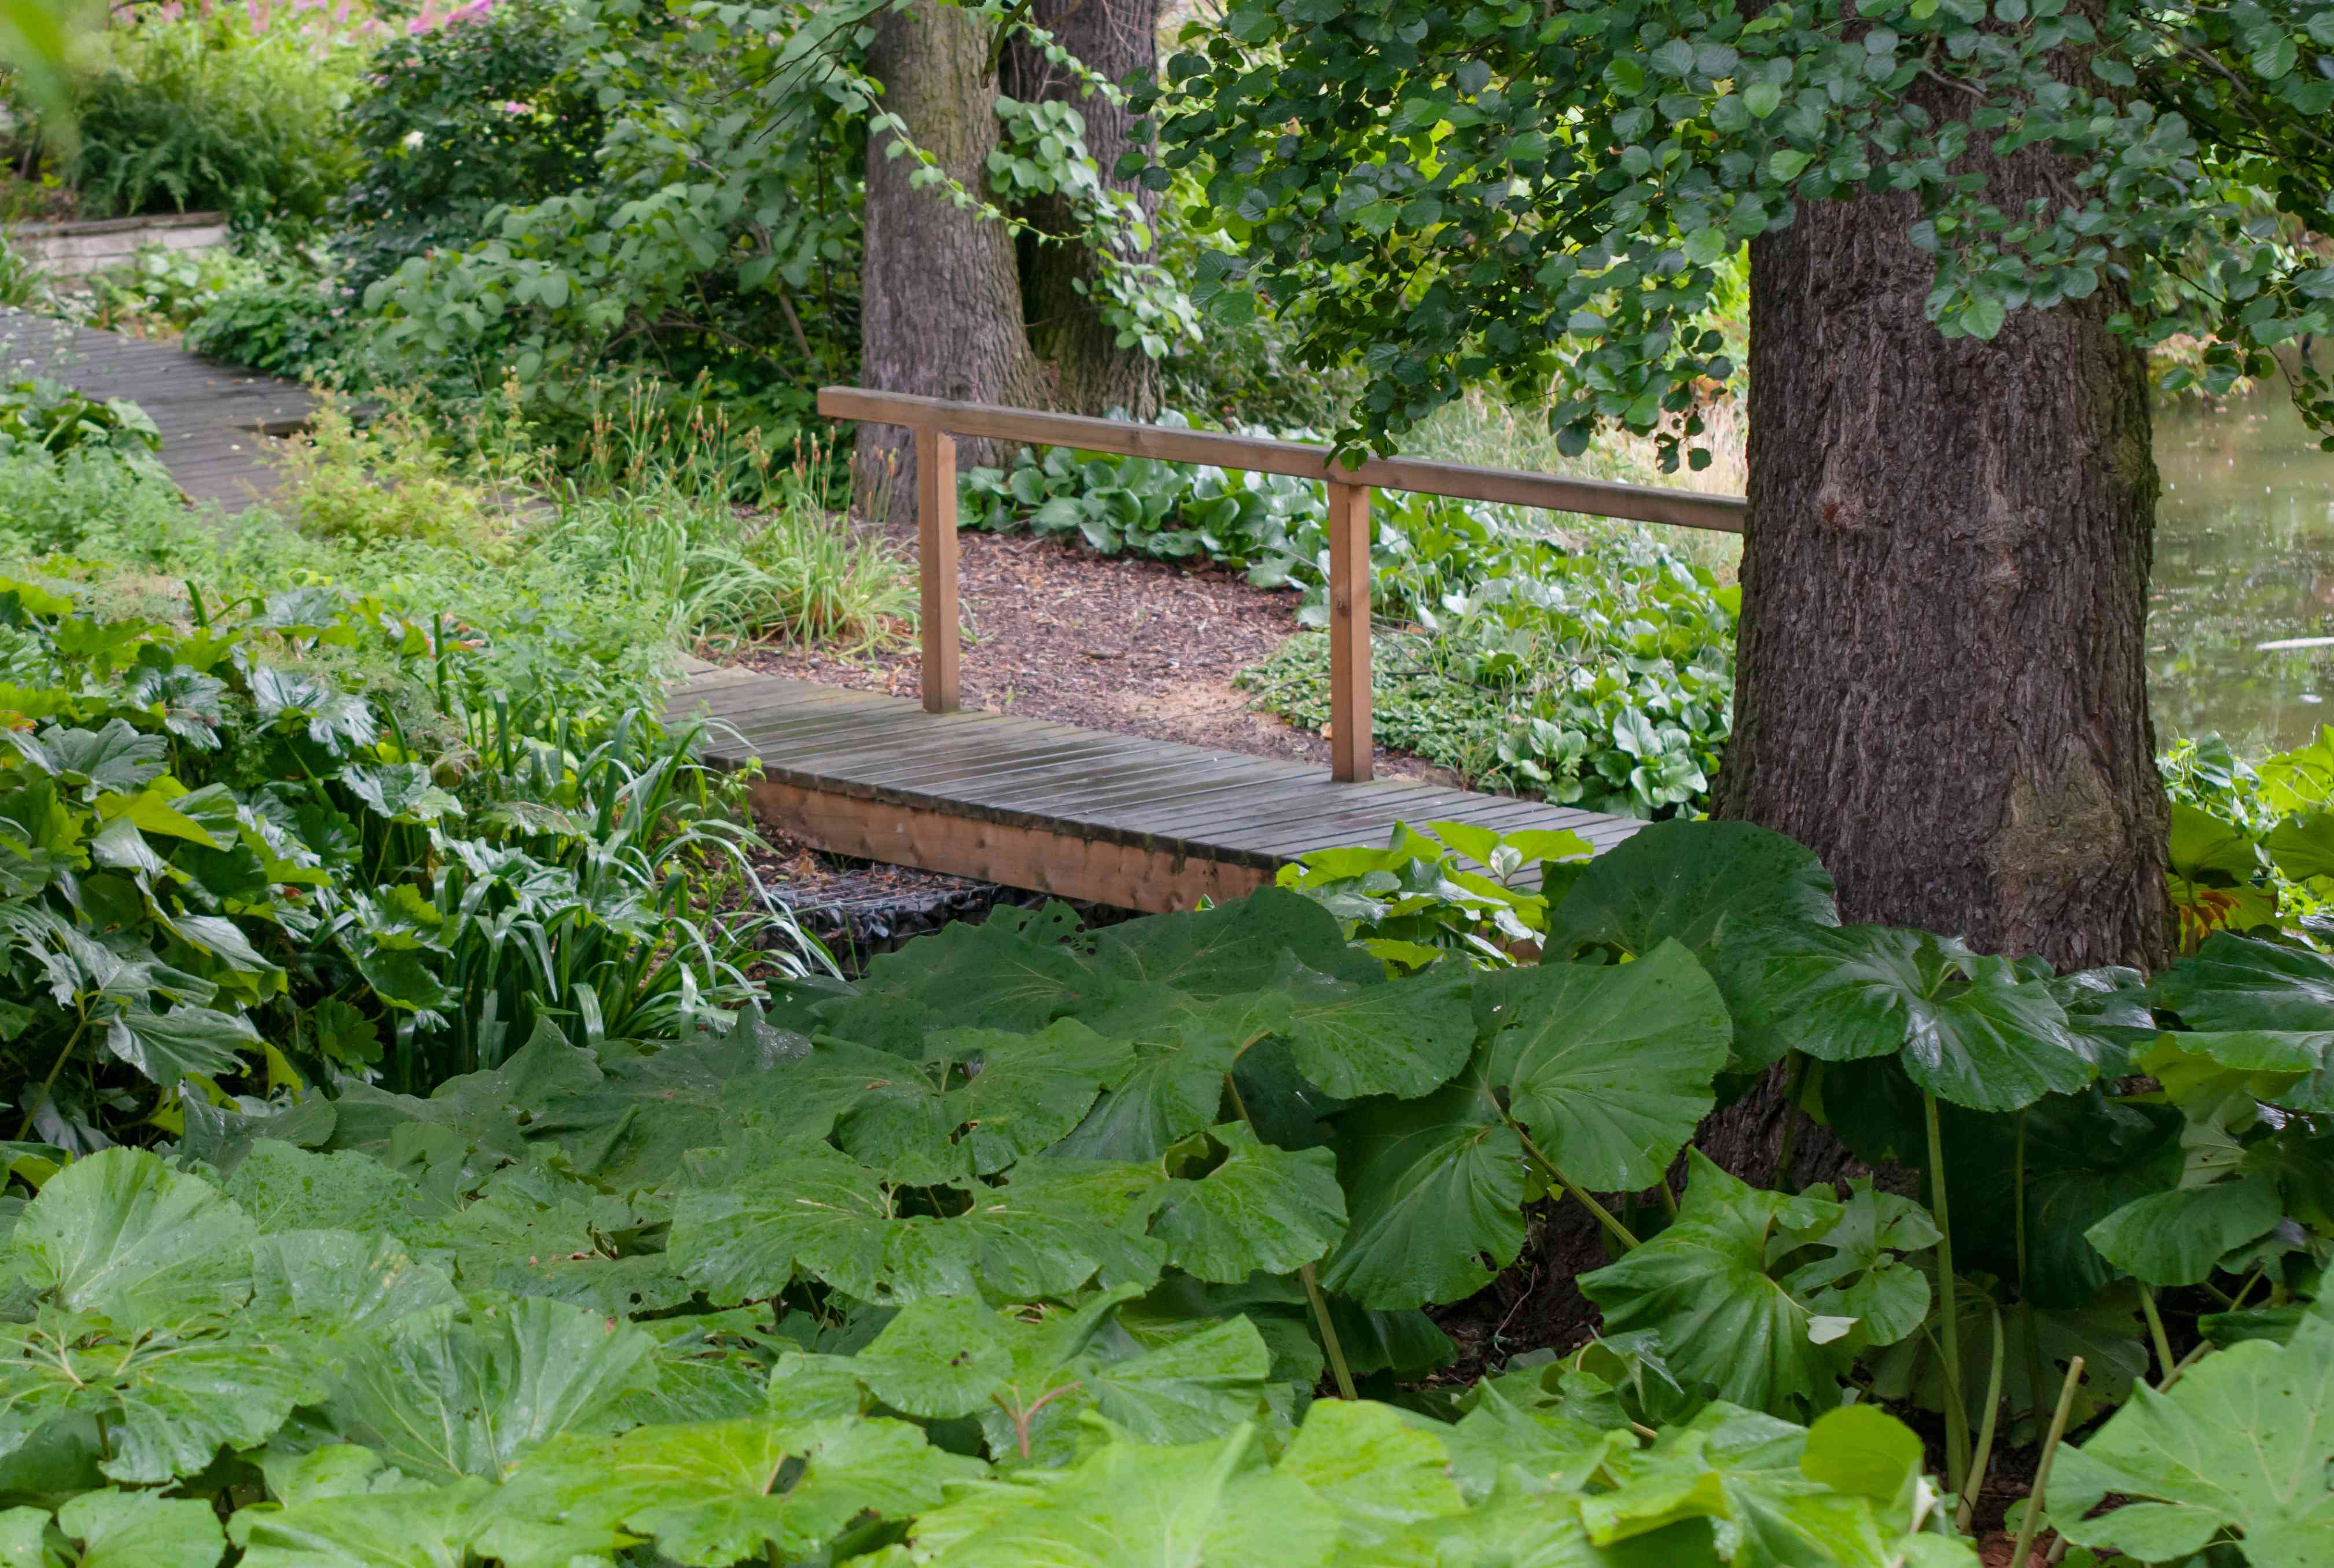 Common butterbur plants with large round leaves at base of tree trunk next to walkway